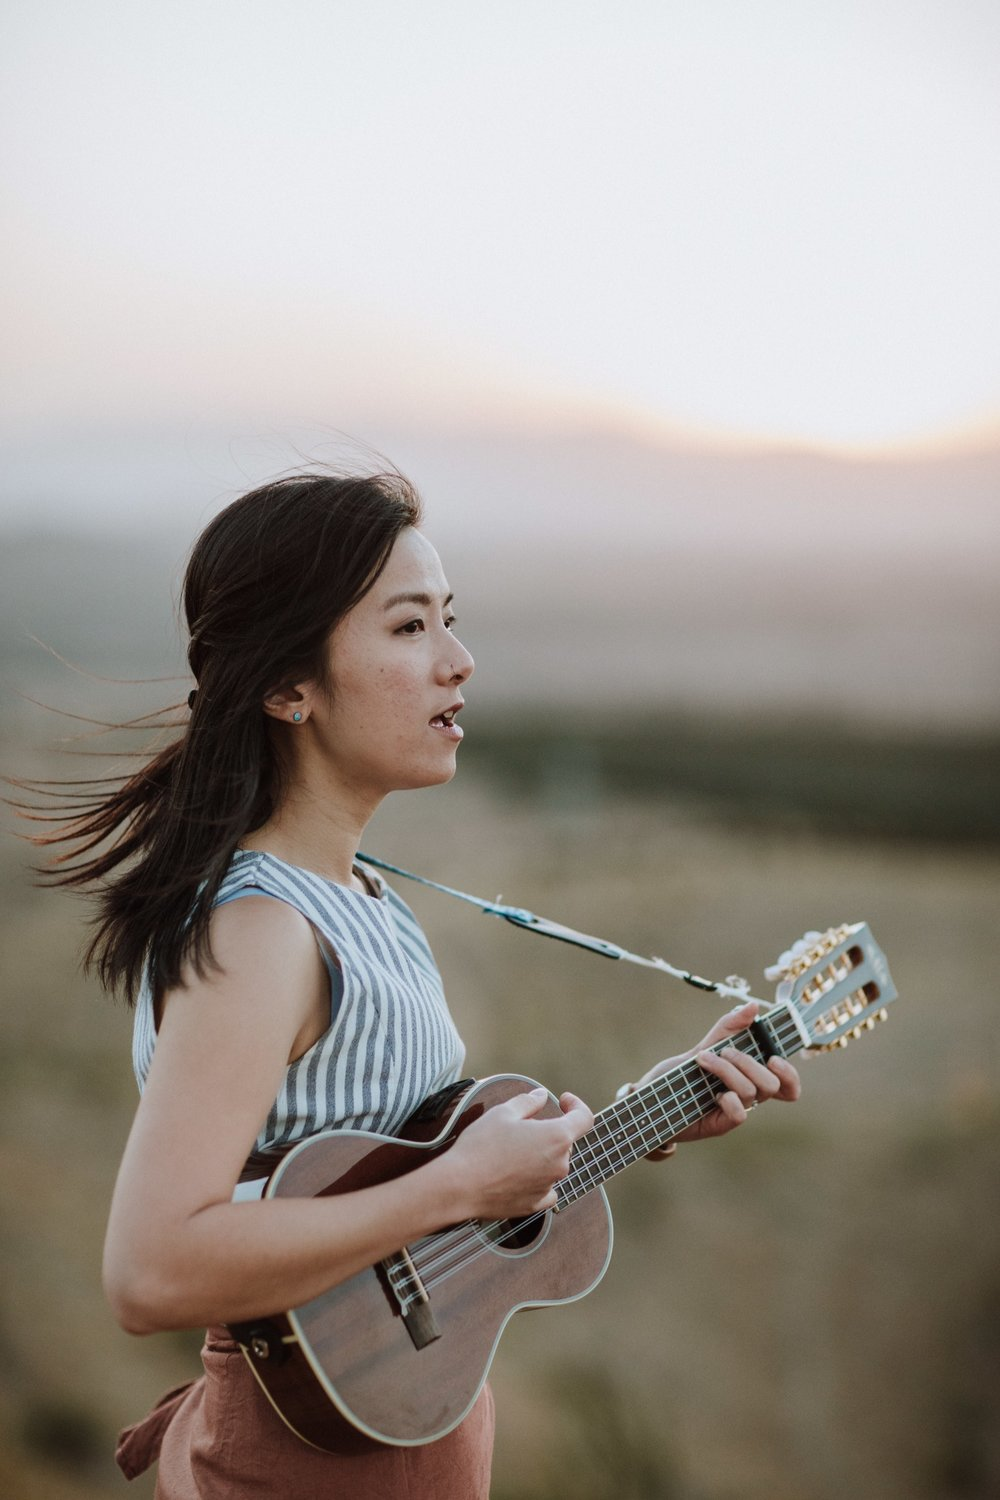 KIM YANG (ACT)  Kim Yang is an acoustic songstress and songwriter with a soothing ethereal voice that captures the attention of passers-by. She started her Australian music journey in early 2016 with a ukulele and a guitar in the streets and cafes of Canberra. Kim's original songs mix elements of folk, pop, blues and jazz and speak candidly from her lived experiences as a partner, daughter, sister, friend and an insecure soul.